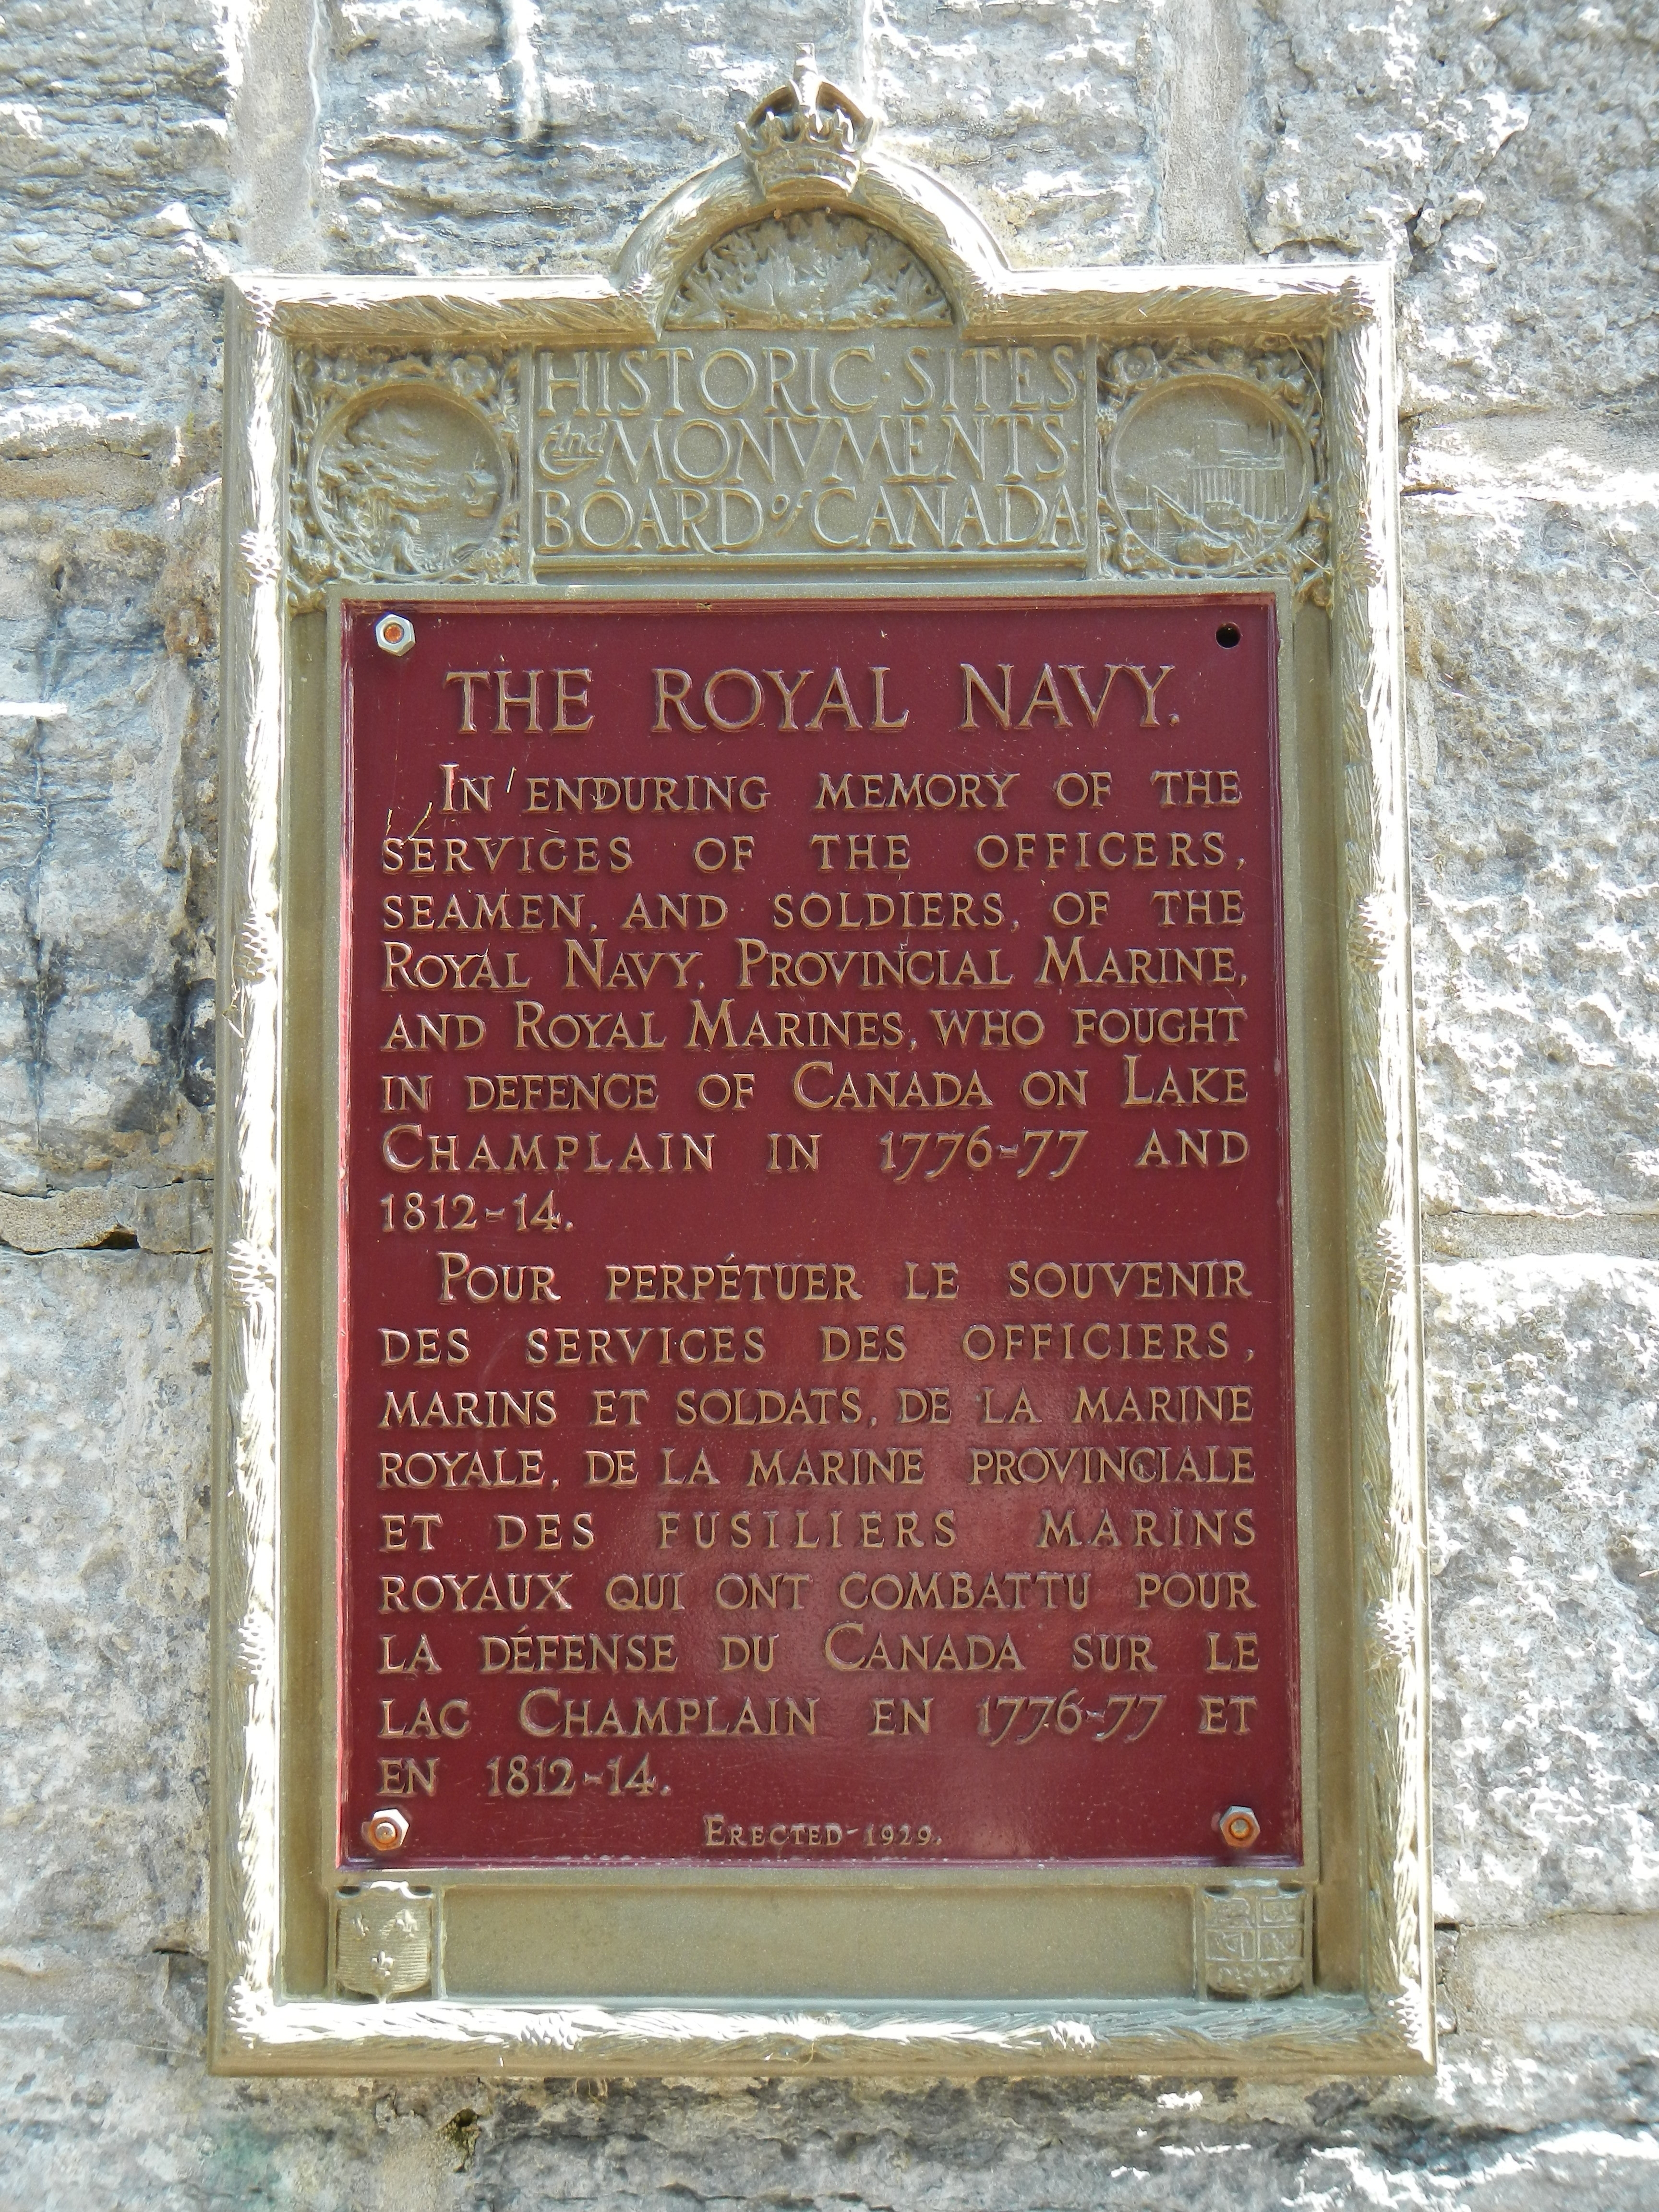 The Royal Navy Marker